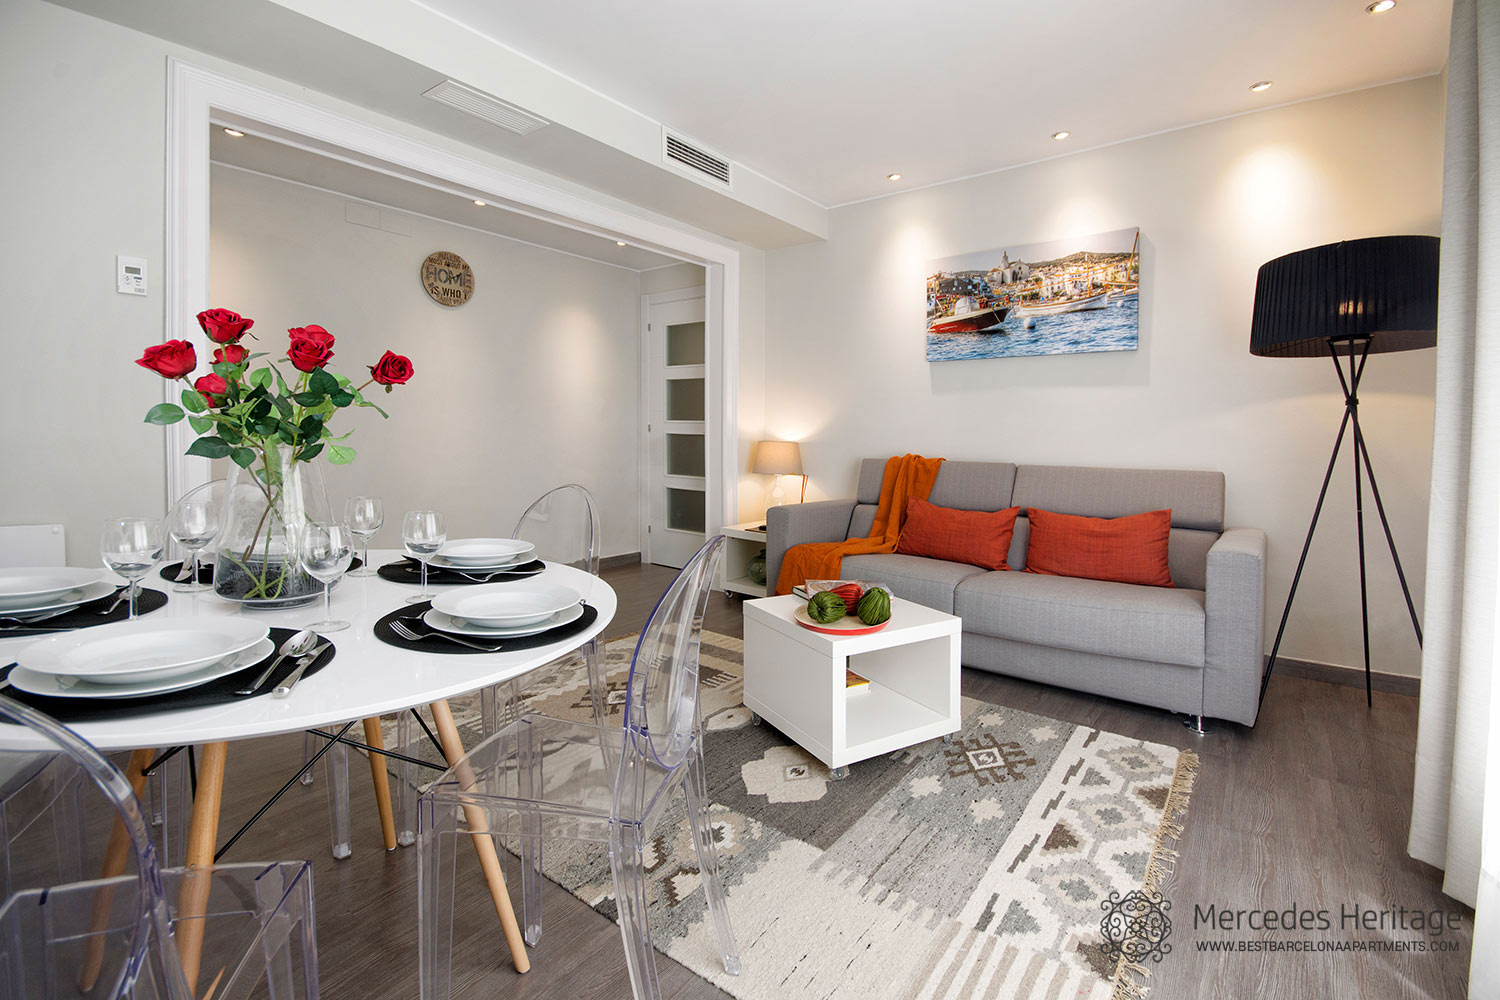 4 bedrooms penthouse apartments in barcelona mercedes for 4 bedroom luxury apartments